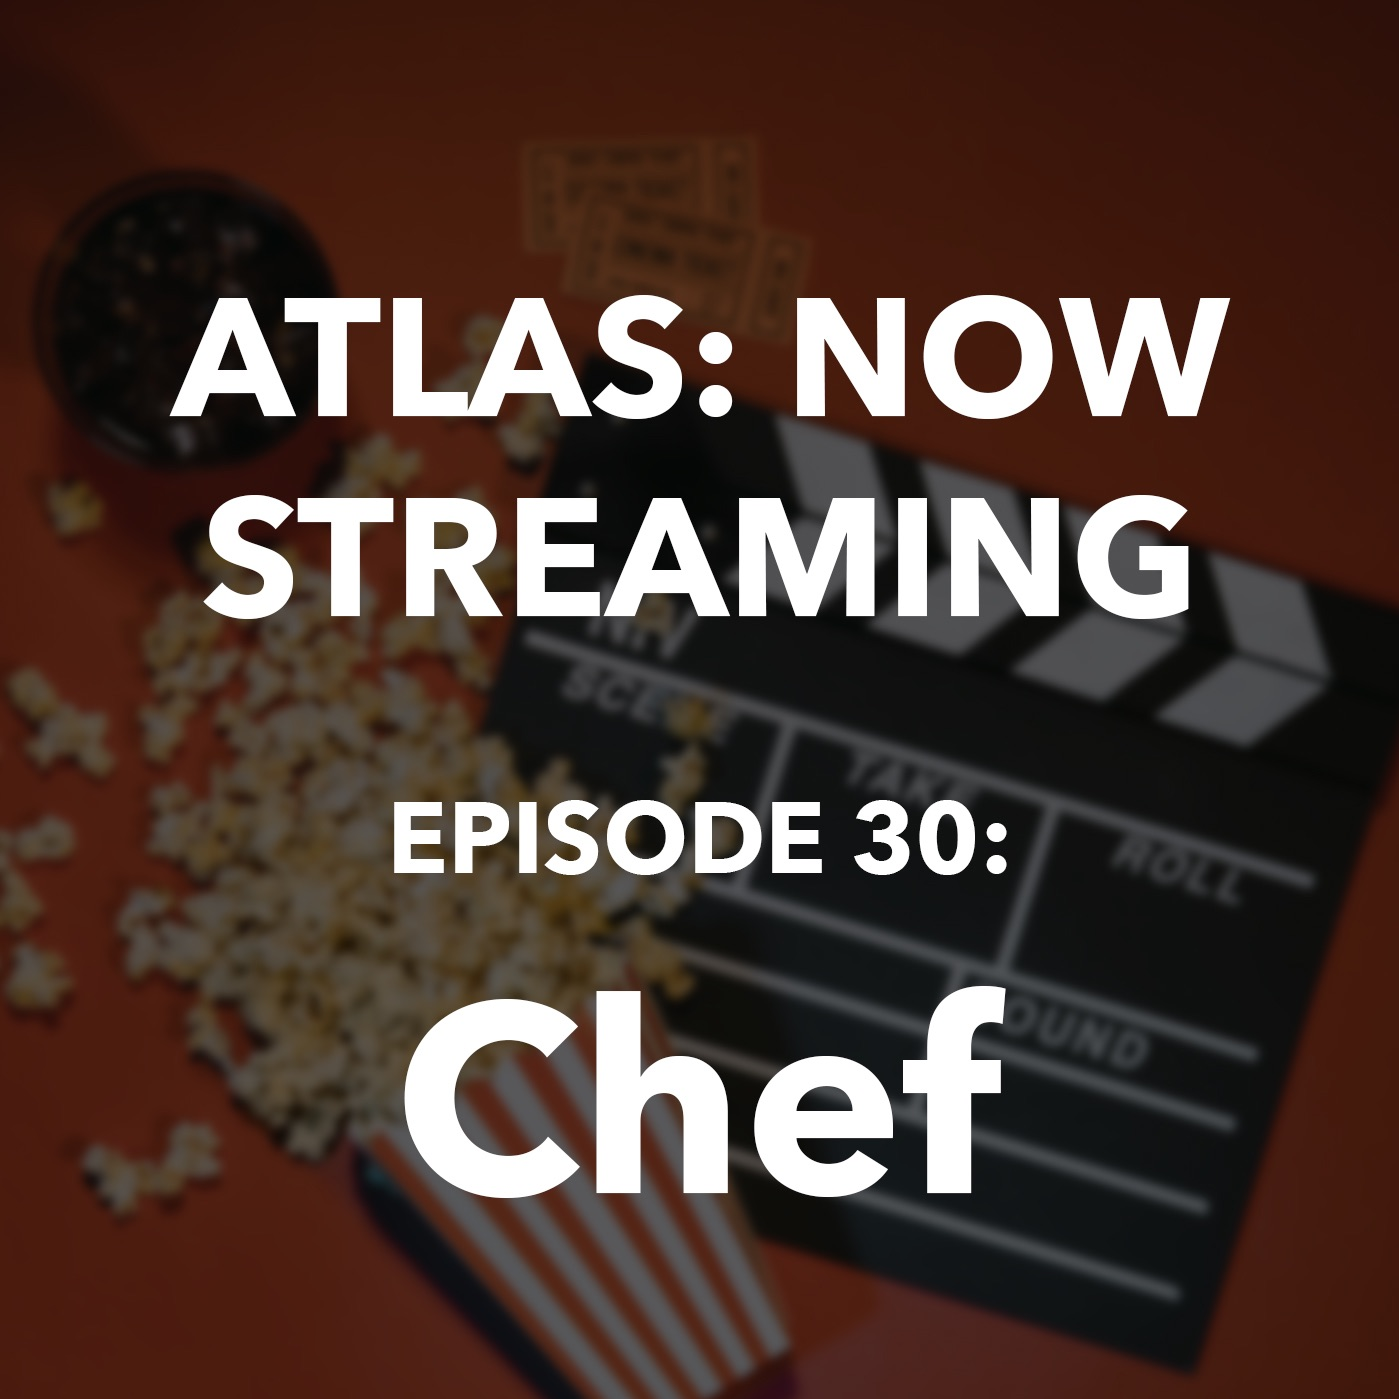 Chef - Atlas: Now Streaming Episode 30